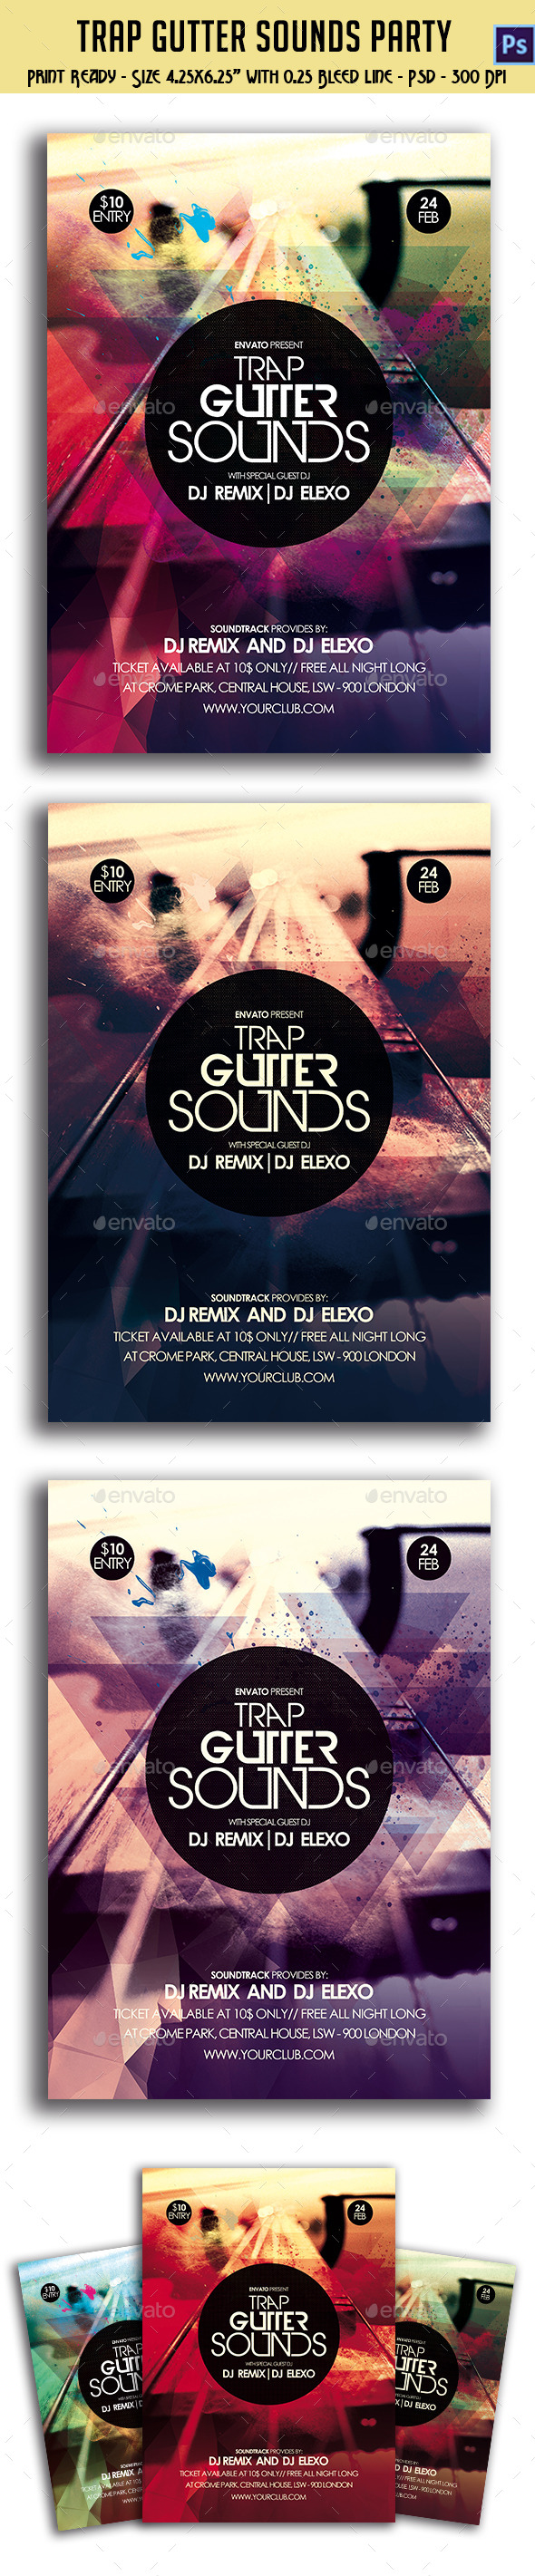 GraphicRiver Trap Gutter Sounds Party Flyer 10592173